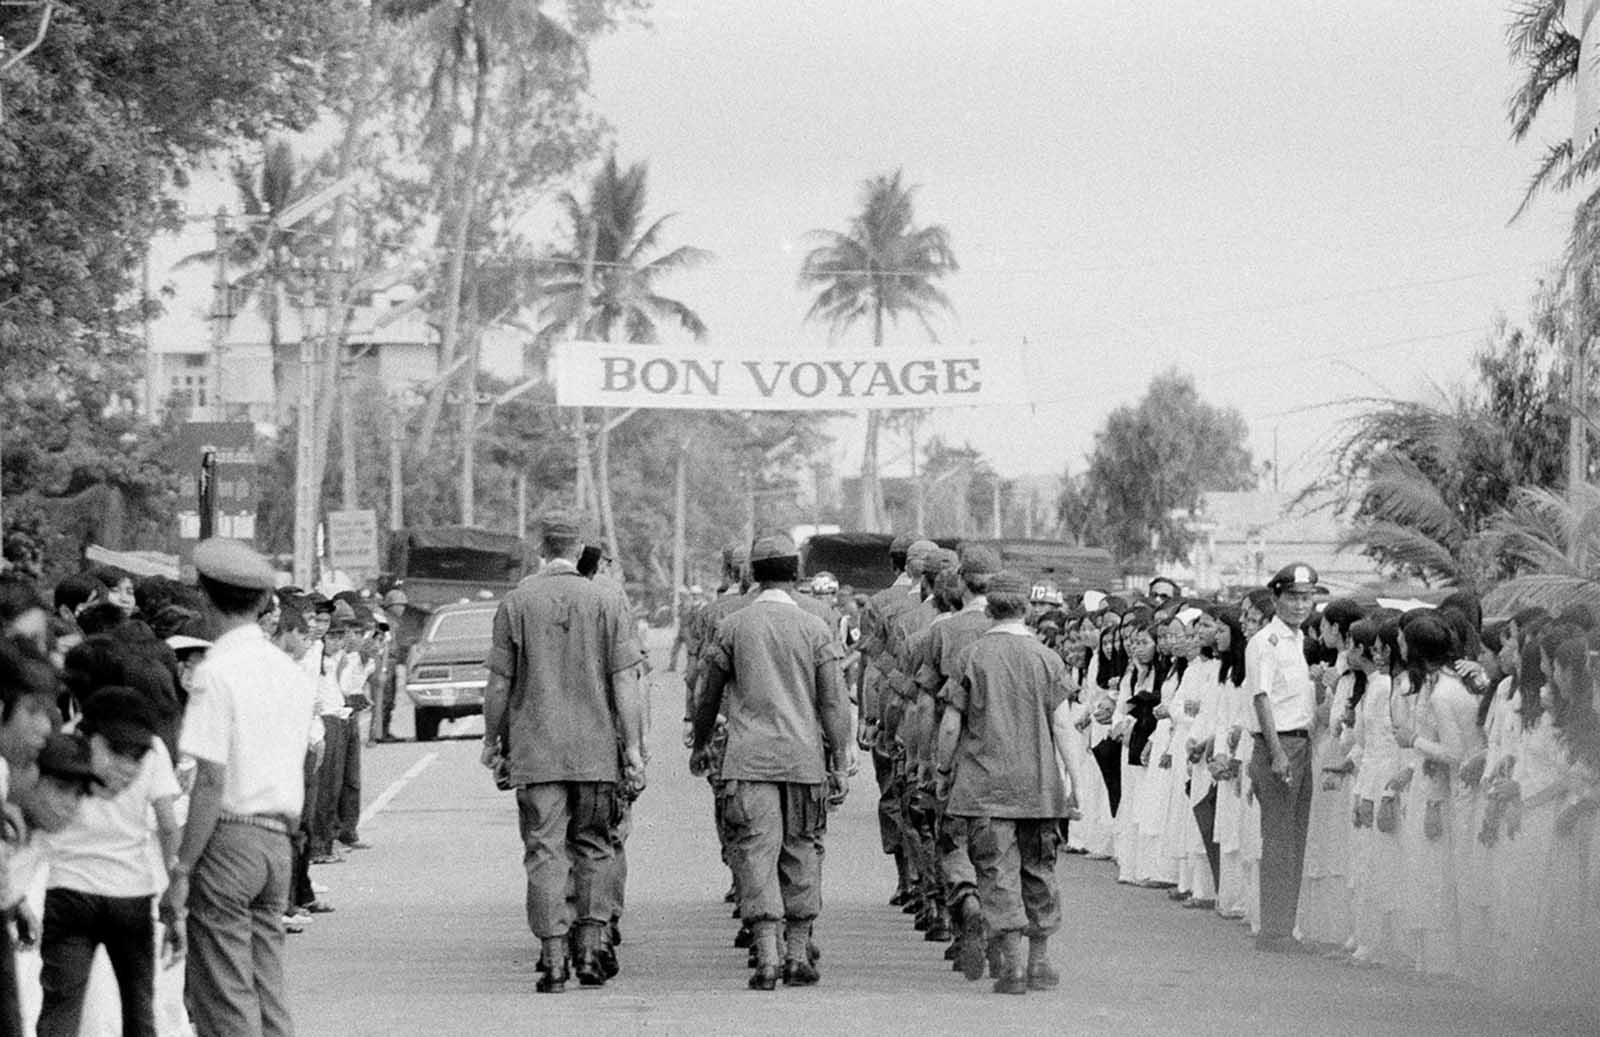 A bon voyage banner stretches overhead in Da Nang, South Vietnam, as soldiers march down a street following a farewell ceremony for some of the last U.S. troops in the country's northern military region, on March 26, 1973.